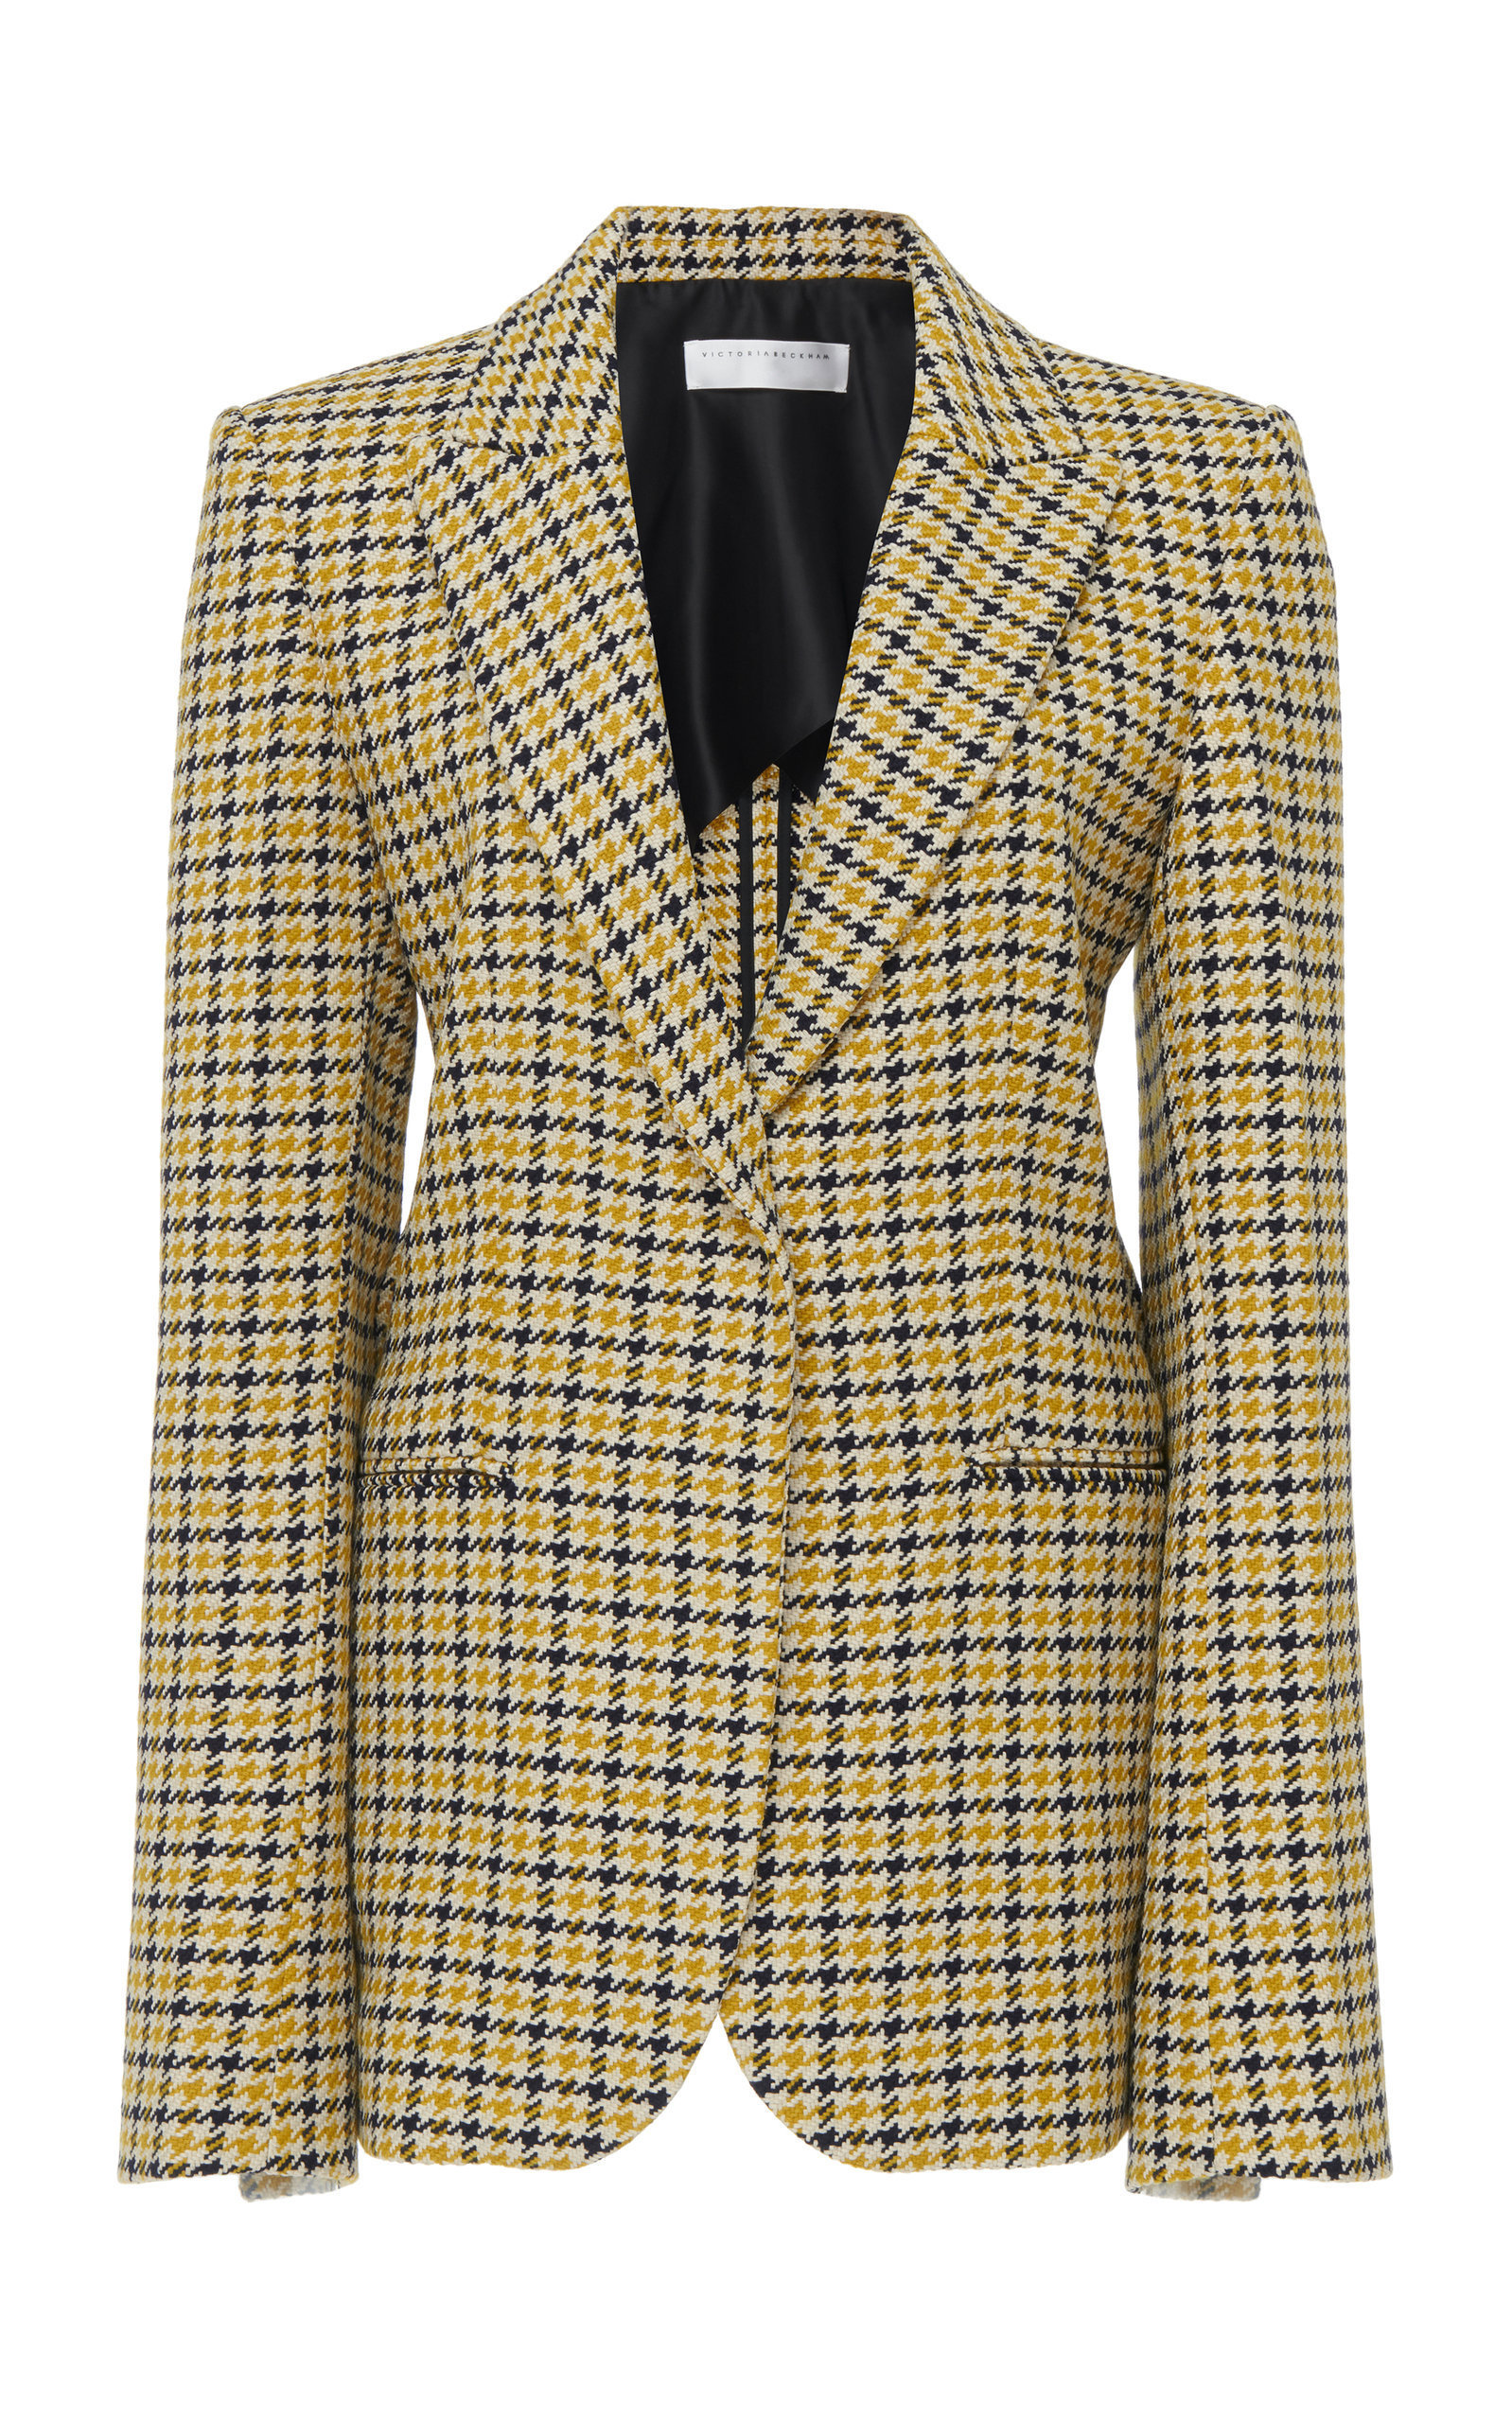 cbf8593822 victoria-beckham-plaid-wool-blend-tailored-notched-lapel-blazer-moda-operandi-photo.jpg 1551370526